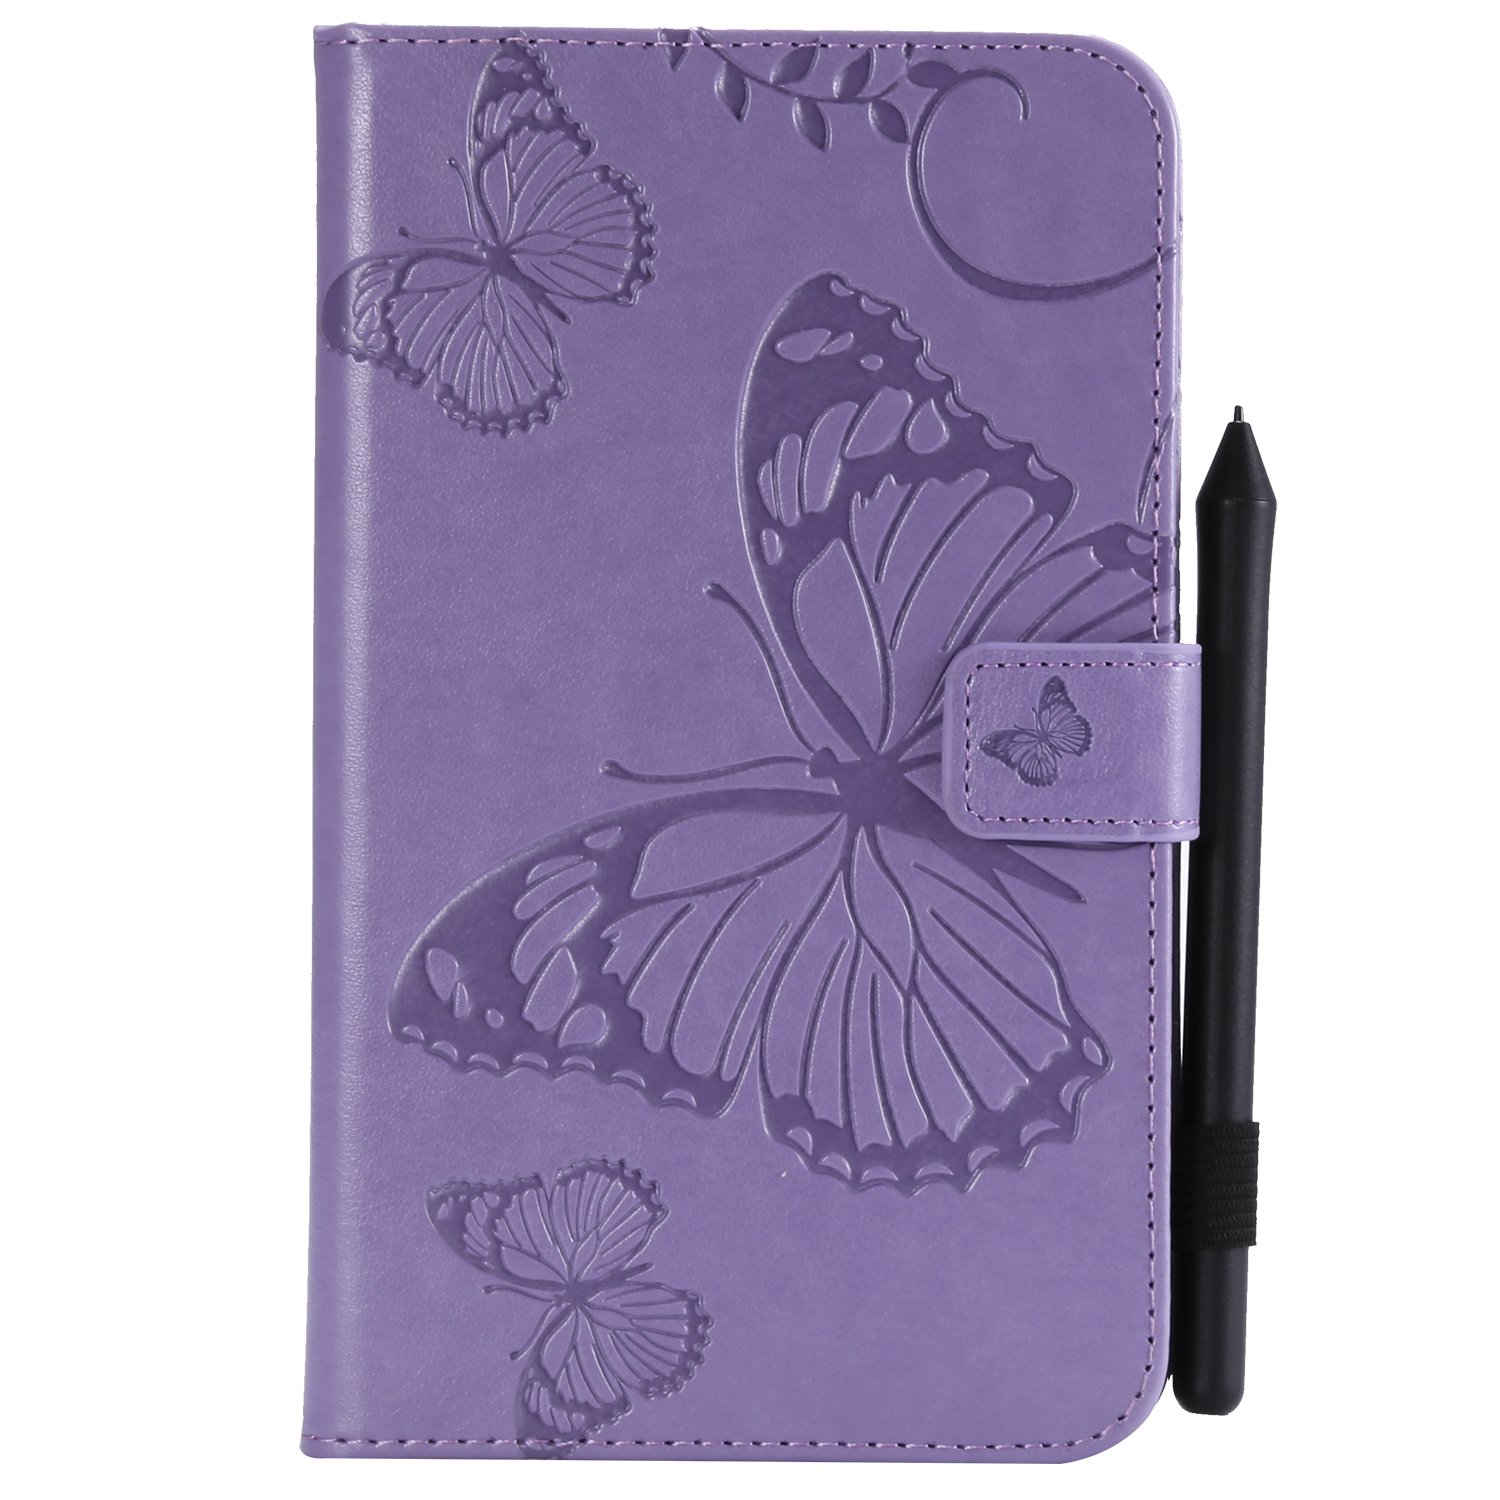 Bear Village Galaxy Tab a 7.0 Inch Case, Butterfly Embossed Anti Scratch Shell with Adjust Stand, Smart Stand PU Leather Case for Samsung Galaxy Tab a 7.0 Inch, Purple